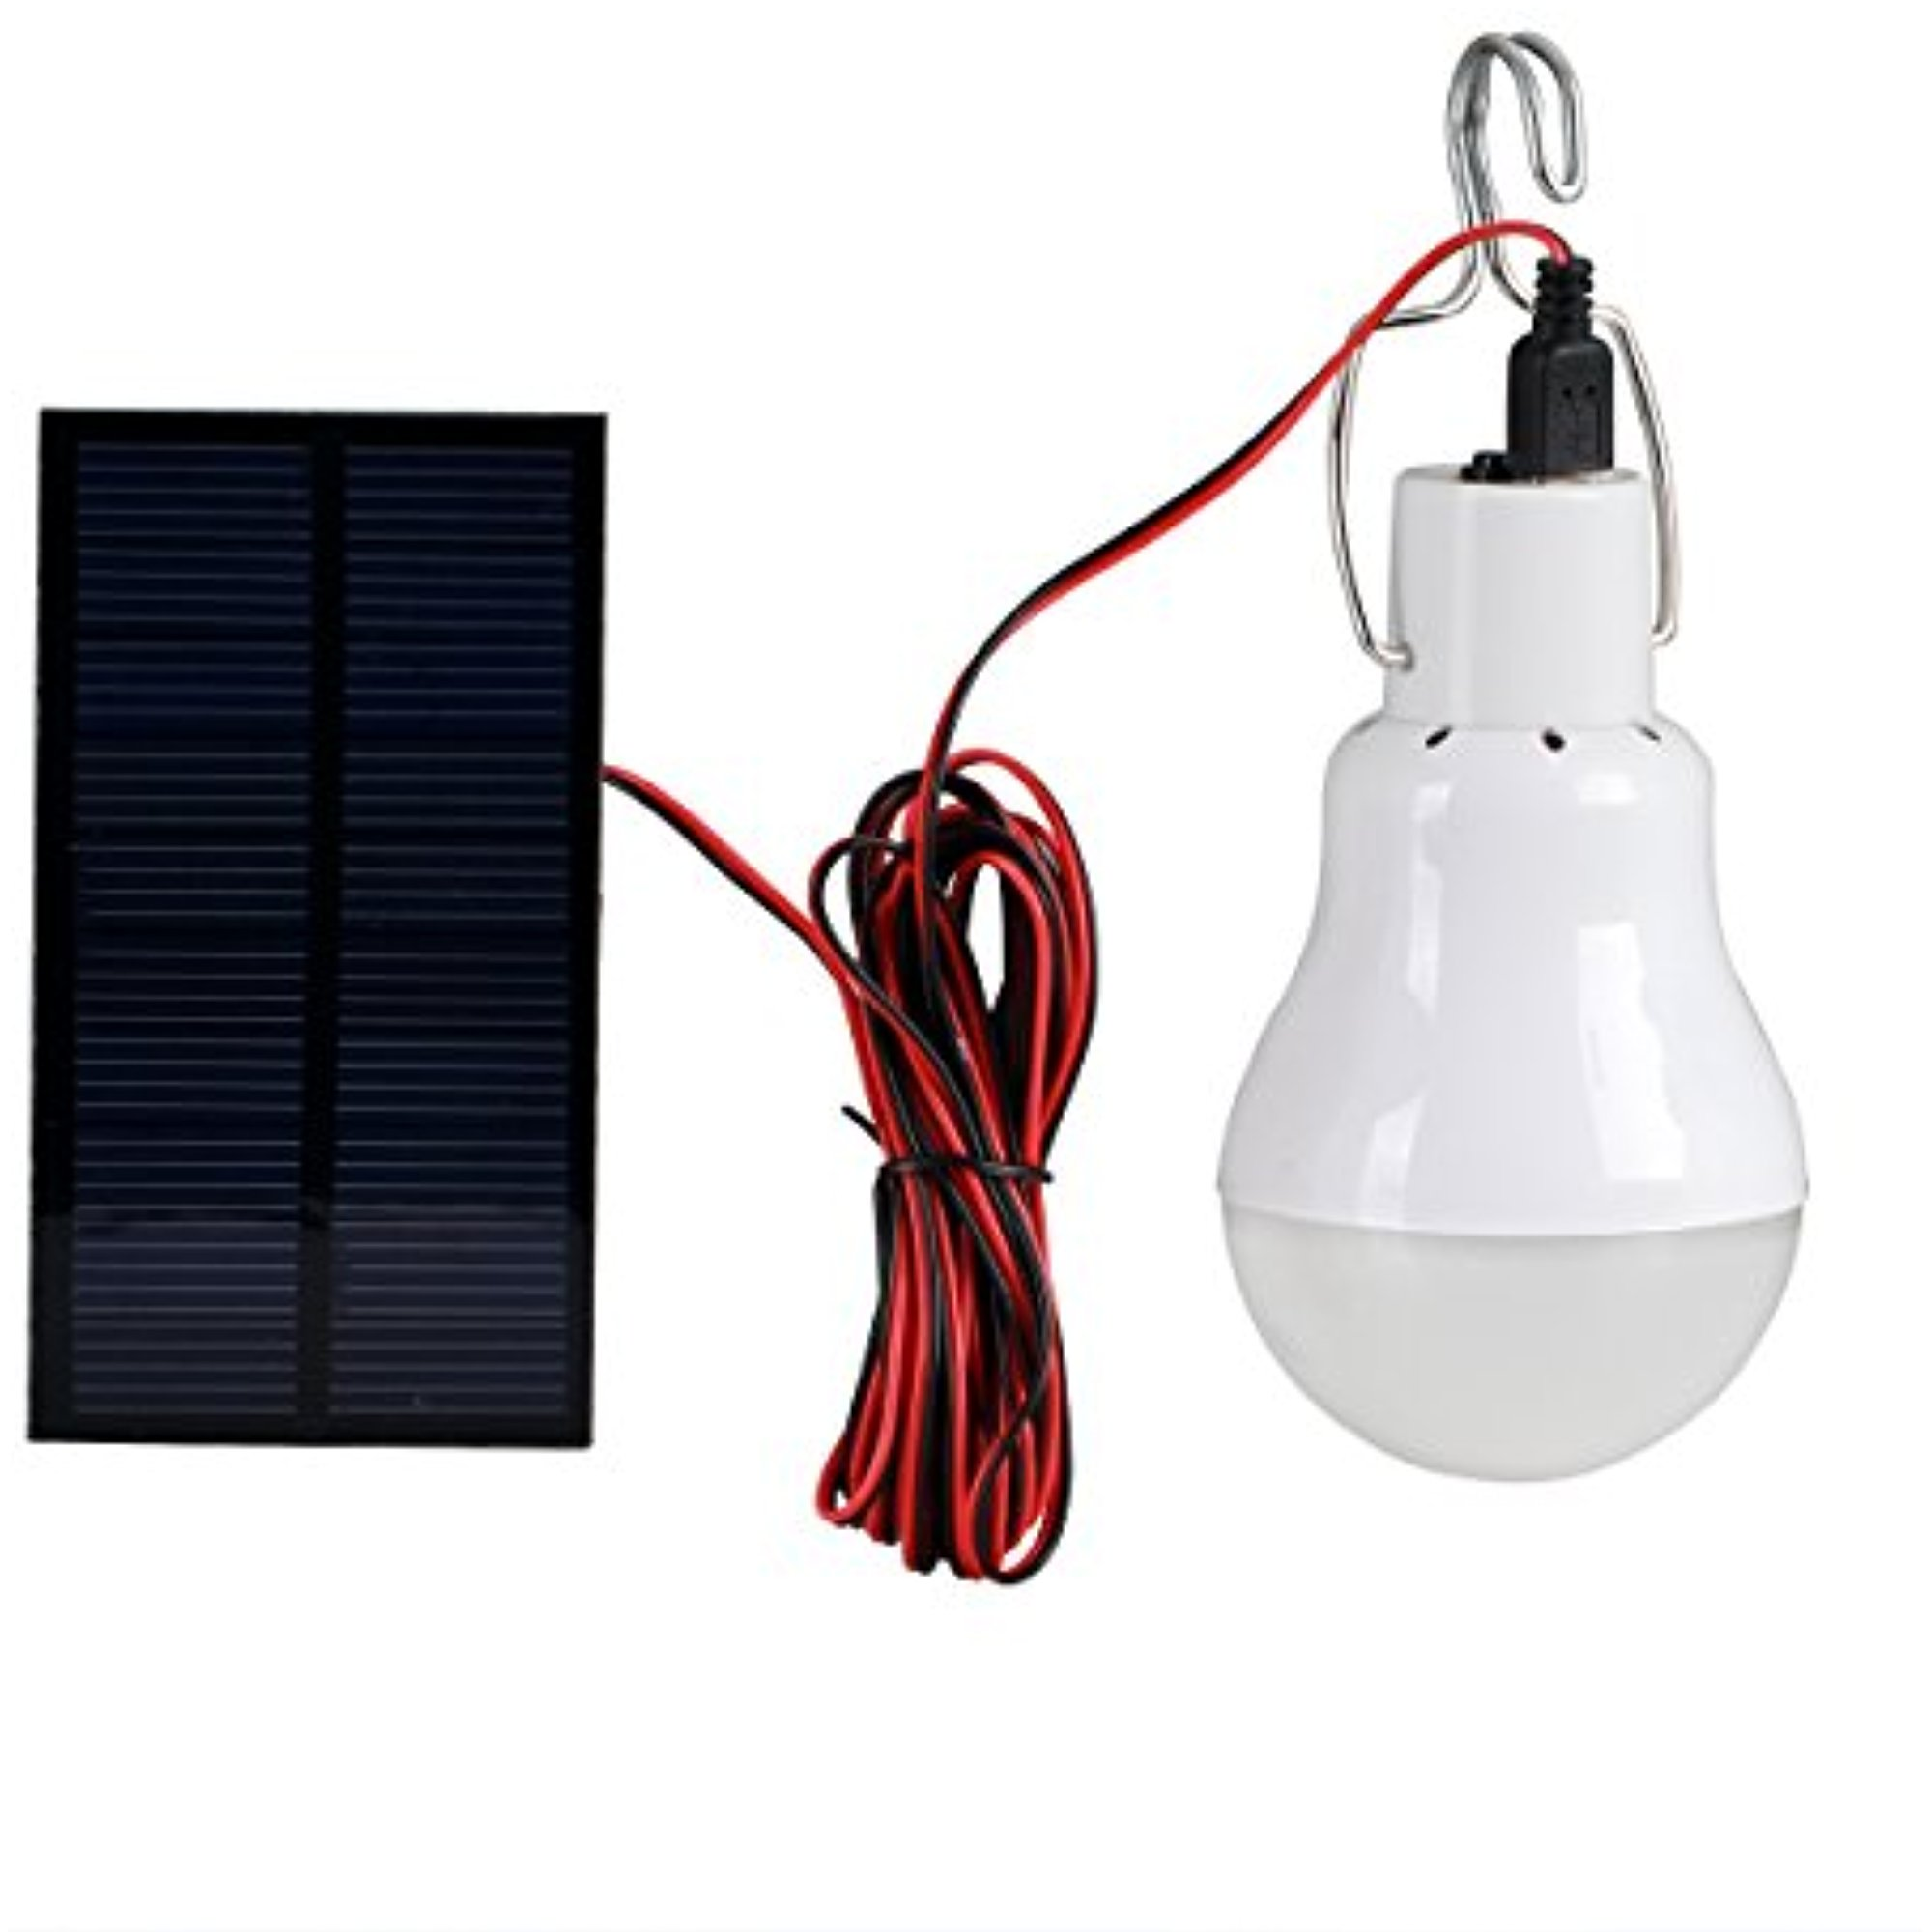 Click here to buy Solar Lights,Solla LED Camping Emergency Light Lantern Bulb with 0.8w Solar Panel?Portable Led Solar Lamp Spotlight For Hiking Camping Tent... by LIVEDITOR LIGHTING.